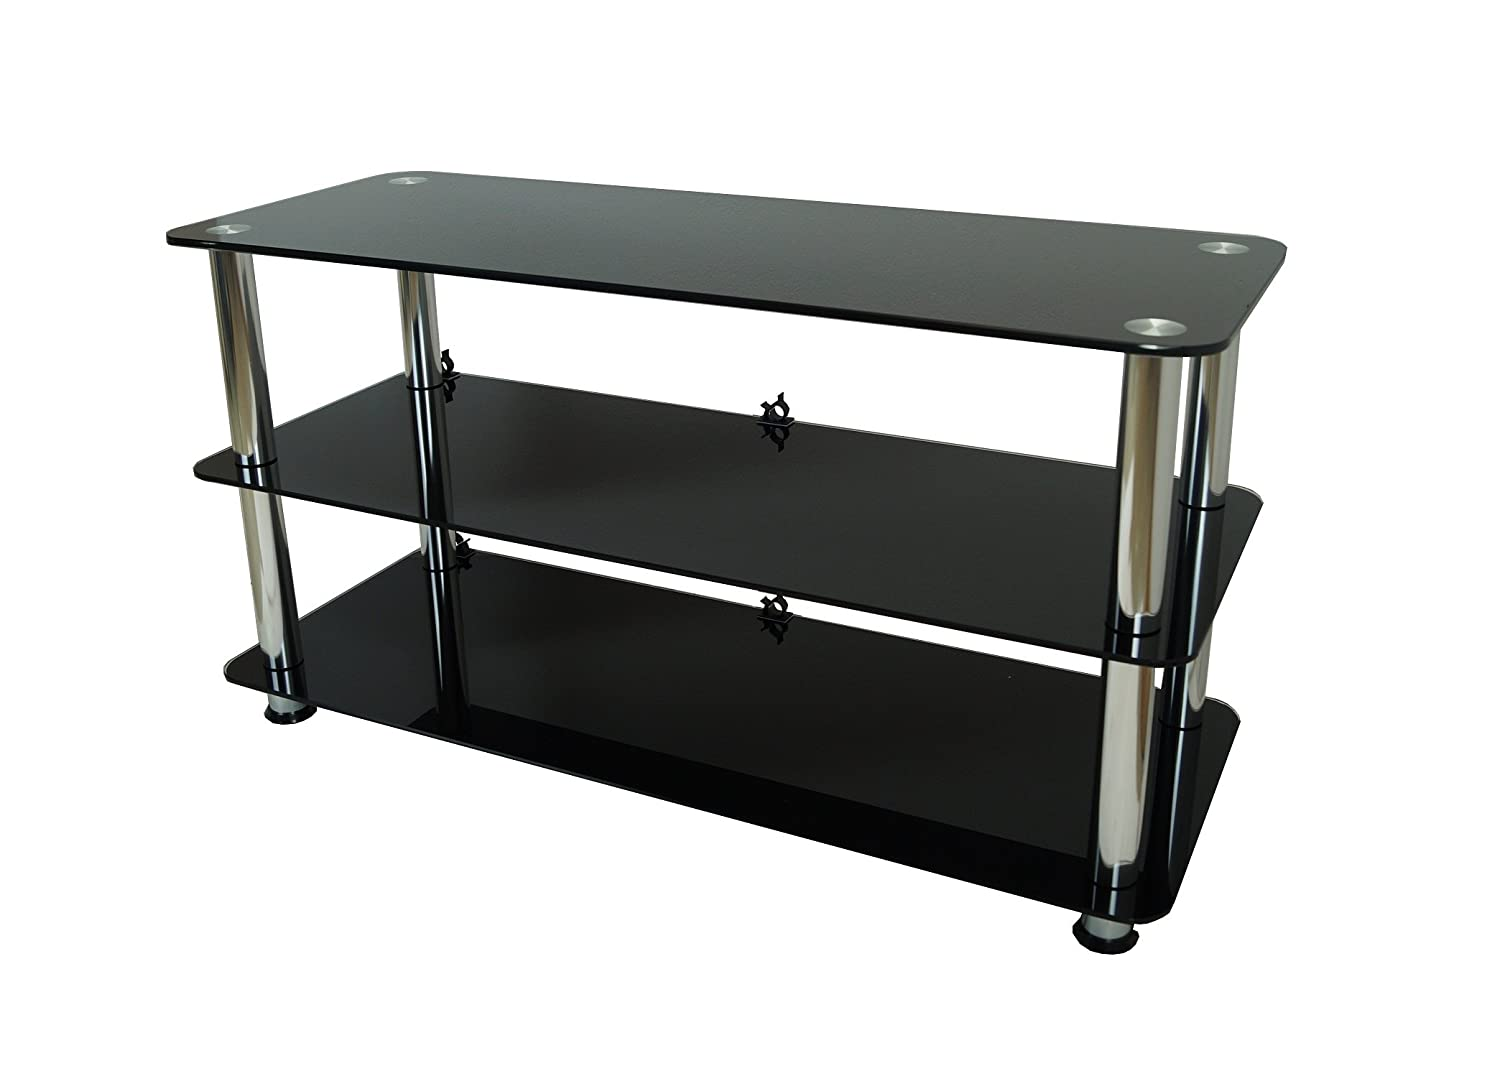 Mountright Black Glass TV Stand For Most LED LCD & Plasma Television (For TV's: 41 up to 55 Inch) UMS2